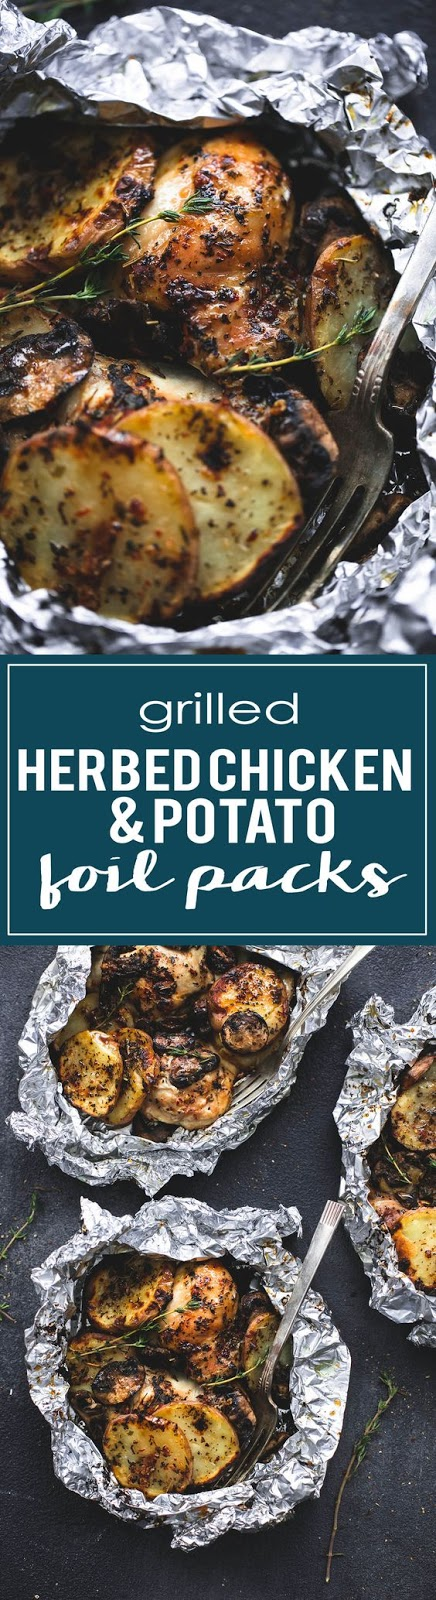 Grilled herbed chicken potato foil